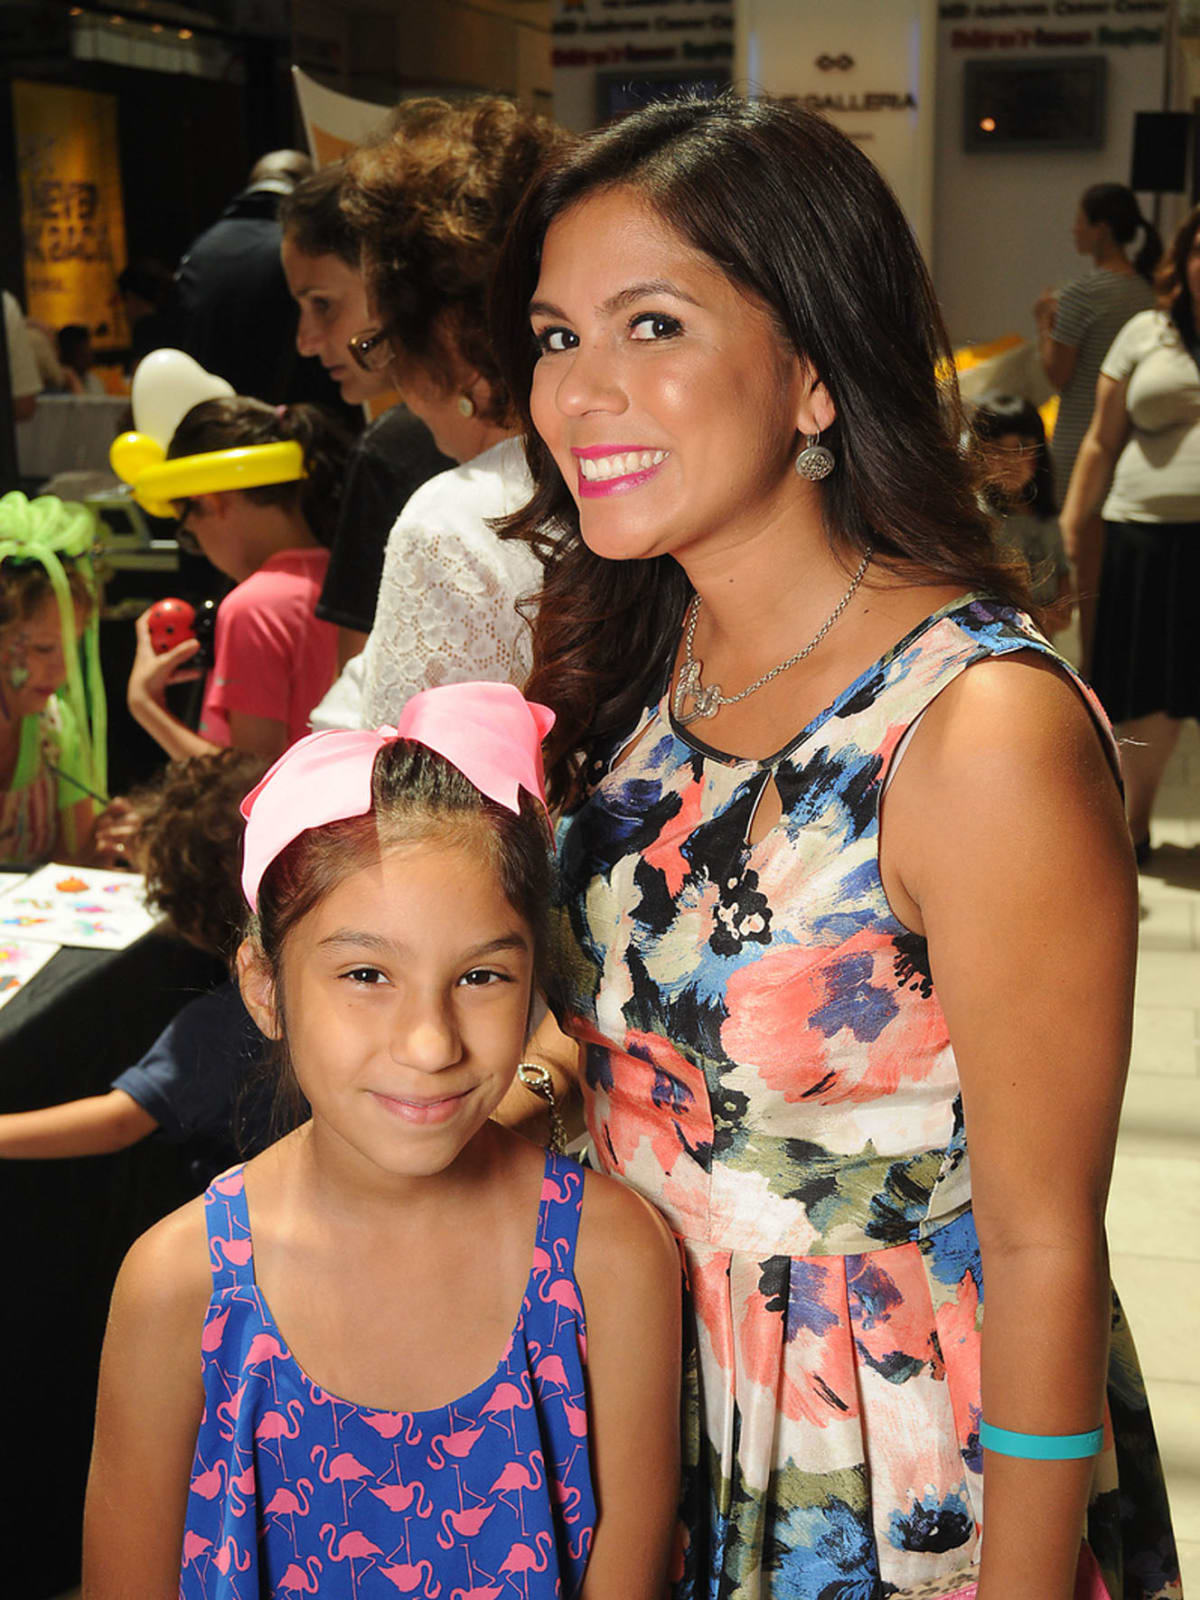 News, Shelby, MD Anderson Back to School, August 2015, Samara Cone, Pamela Cone